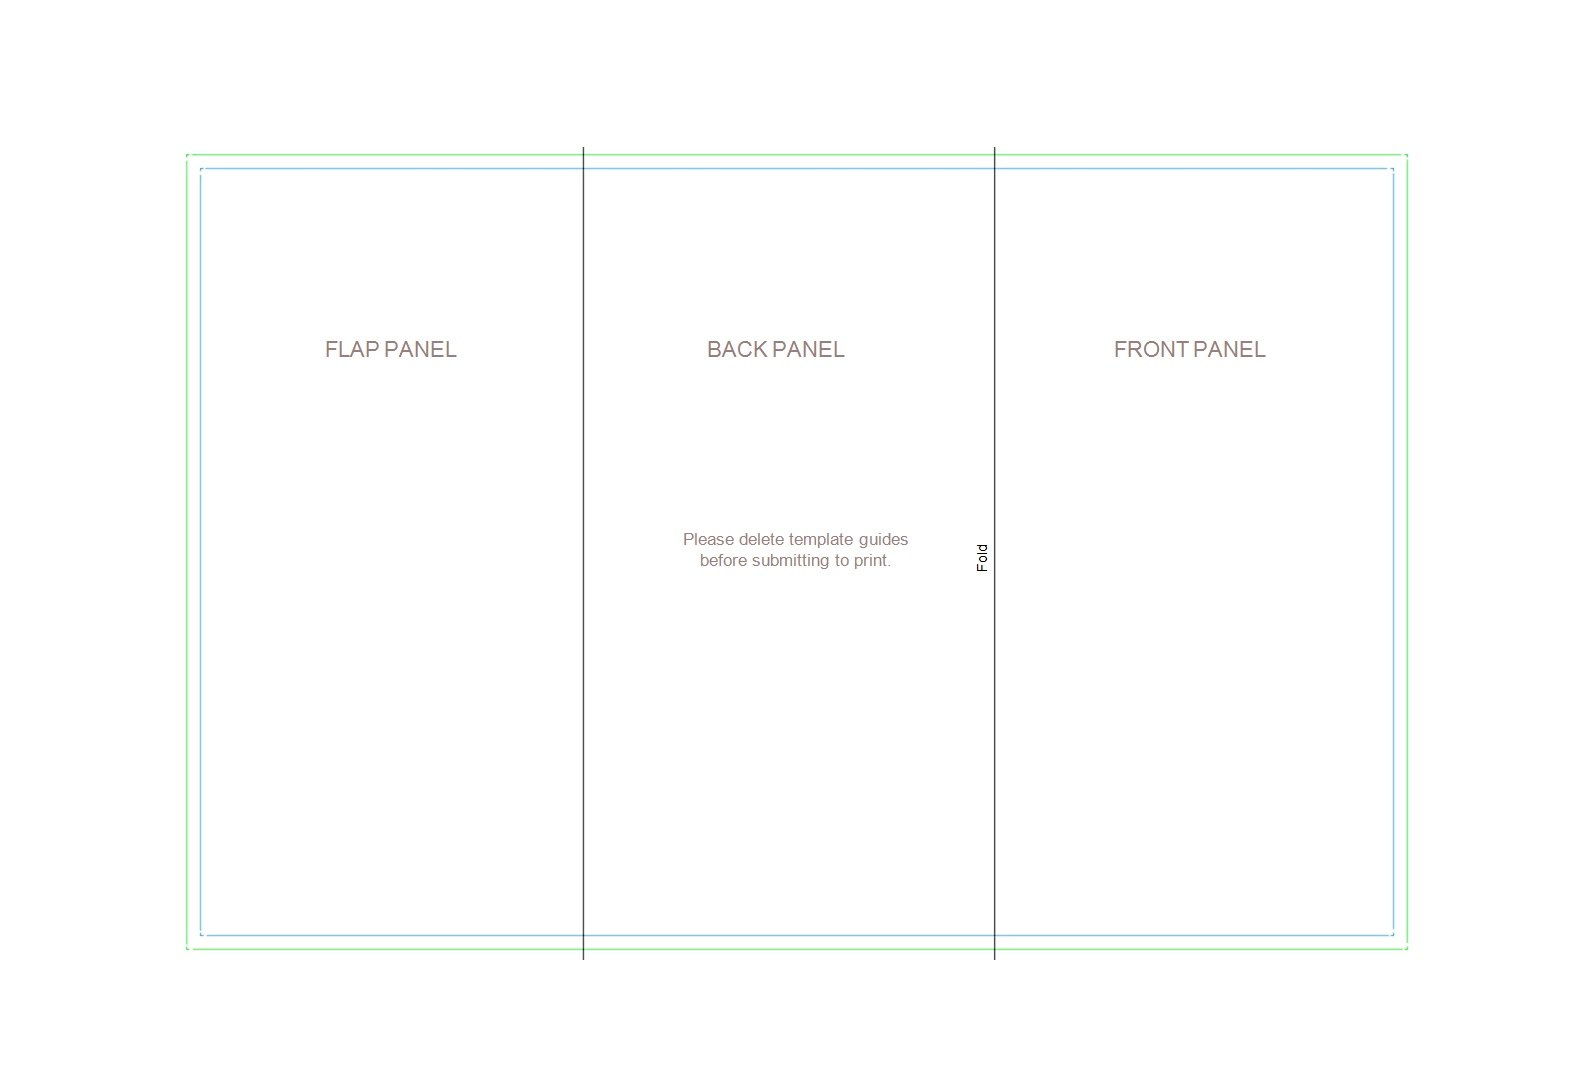 Free Pamphlet Templates Word  Google Docs ᐅ Template Lab Pertaining To Brochure Templates Google Docs